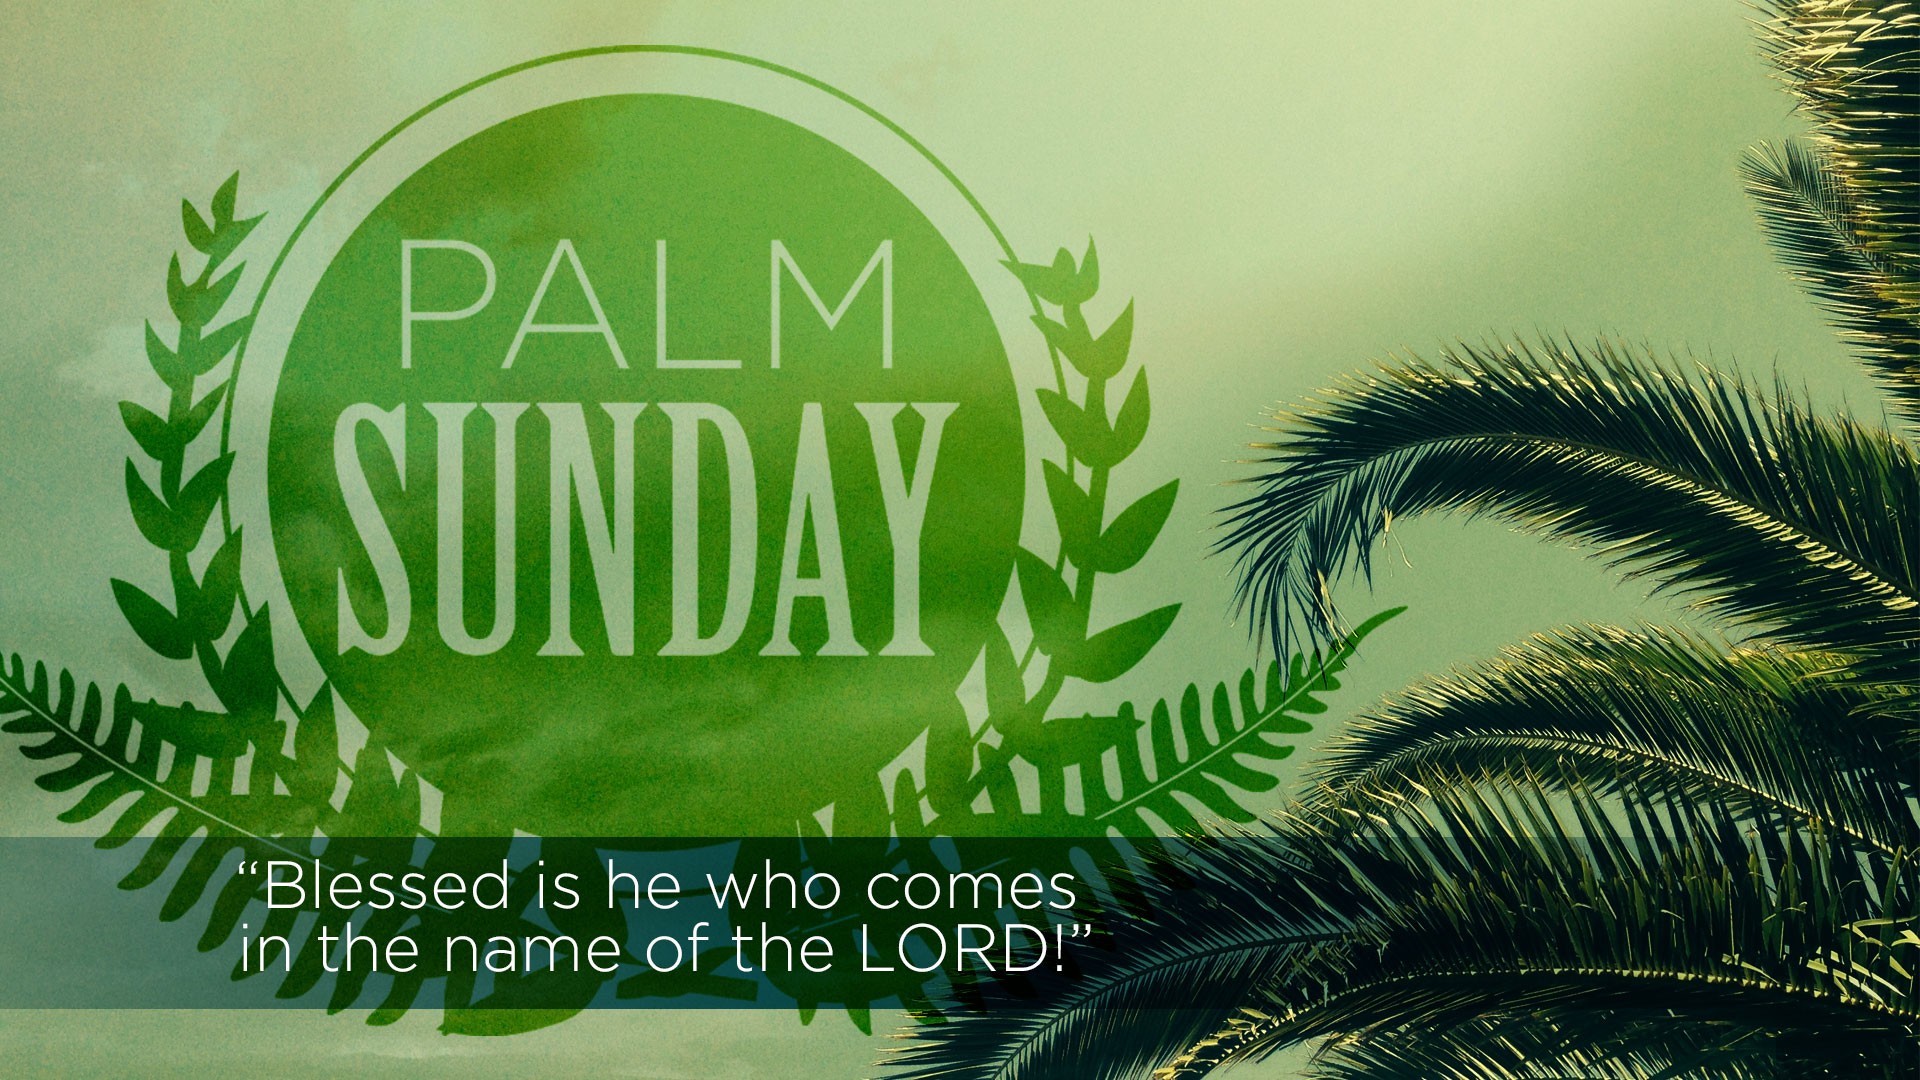 happy palm sunday blessed is he who comes in the name of the lord wallpaper